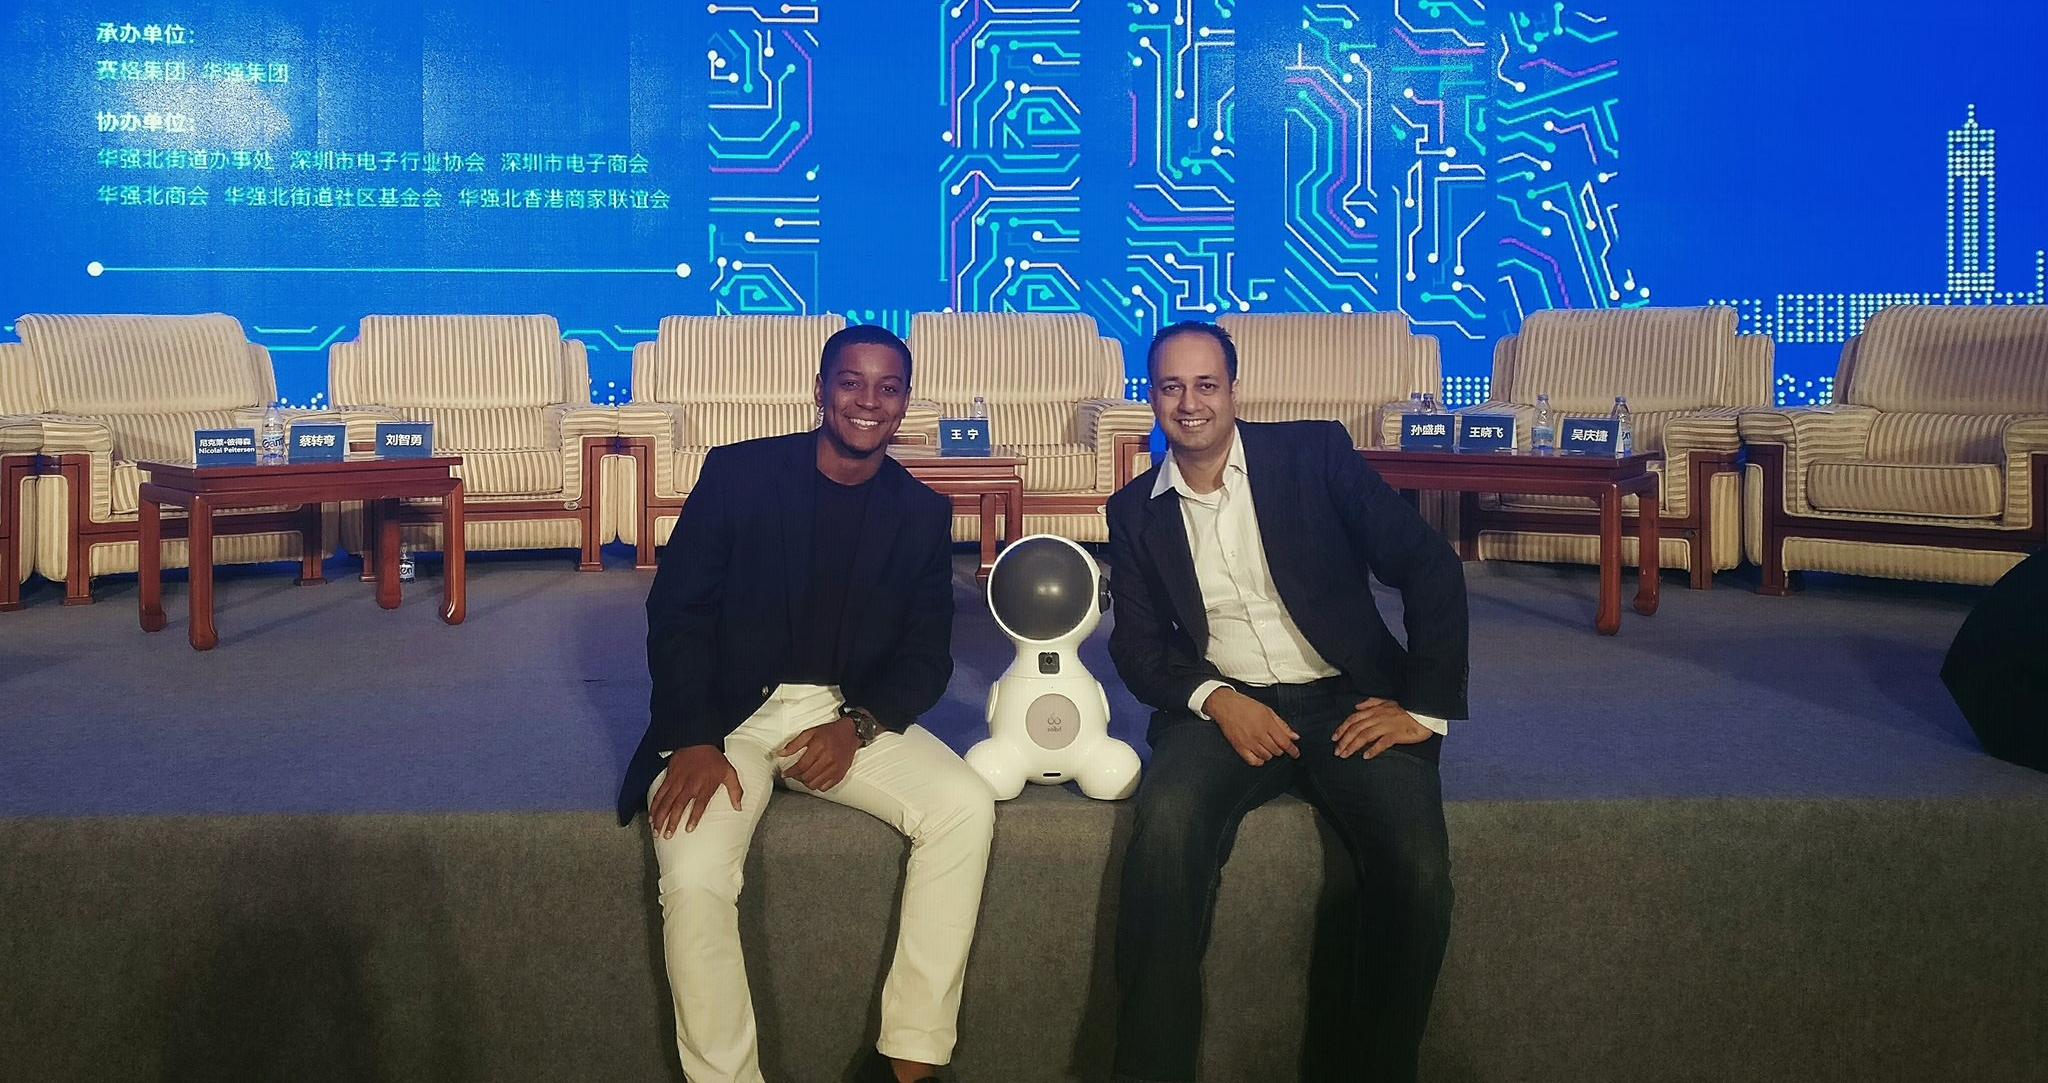 - James Kirk (left; S'15) spent the summer of 2016 studying abroad in Shenzhen, China and interning at 7 Senses. While there, James helped code for the Facial Recognition of Solbit, a robot aimed at helping children with disabilities in educational settings. James chose to accept a full-time, paid role at 7 Senses and has been on the grind ever since. We're very proud of you, James, and don't let up over there!